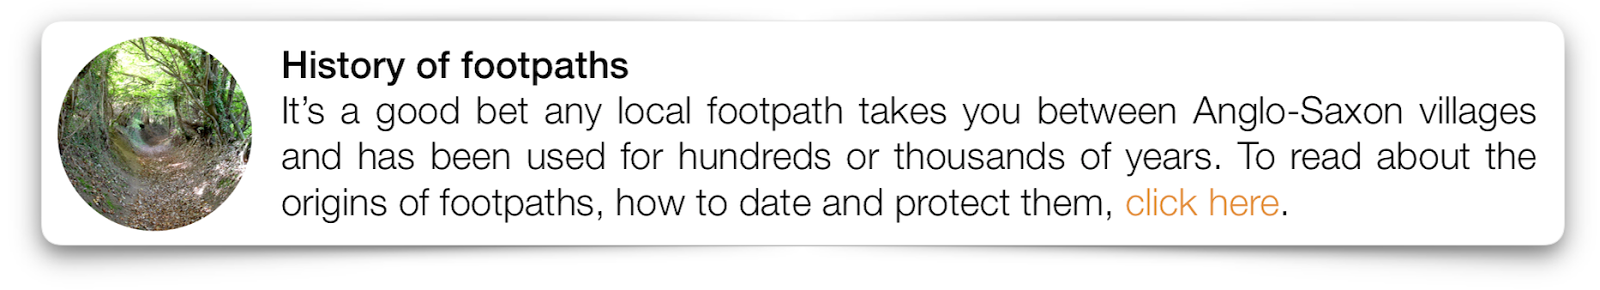 History of footpaths